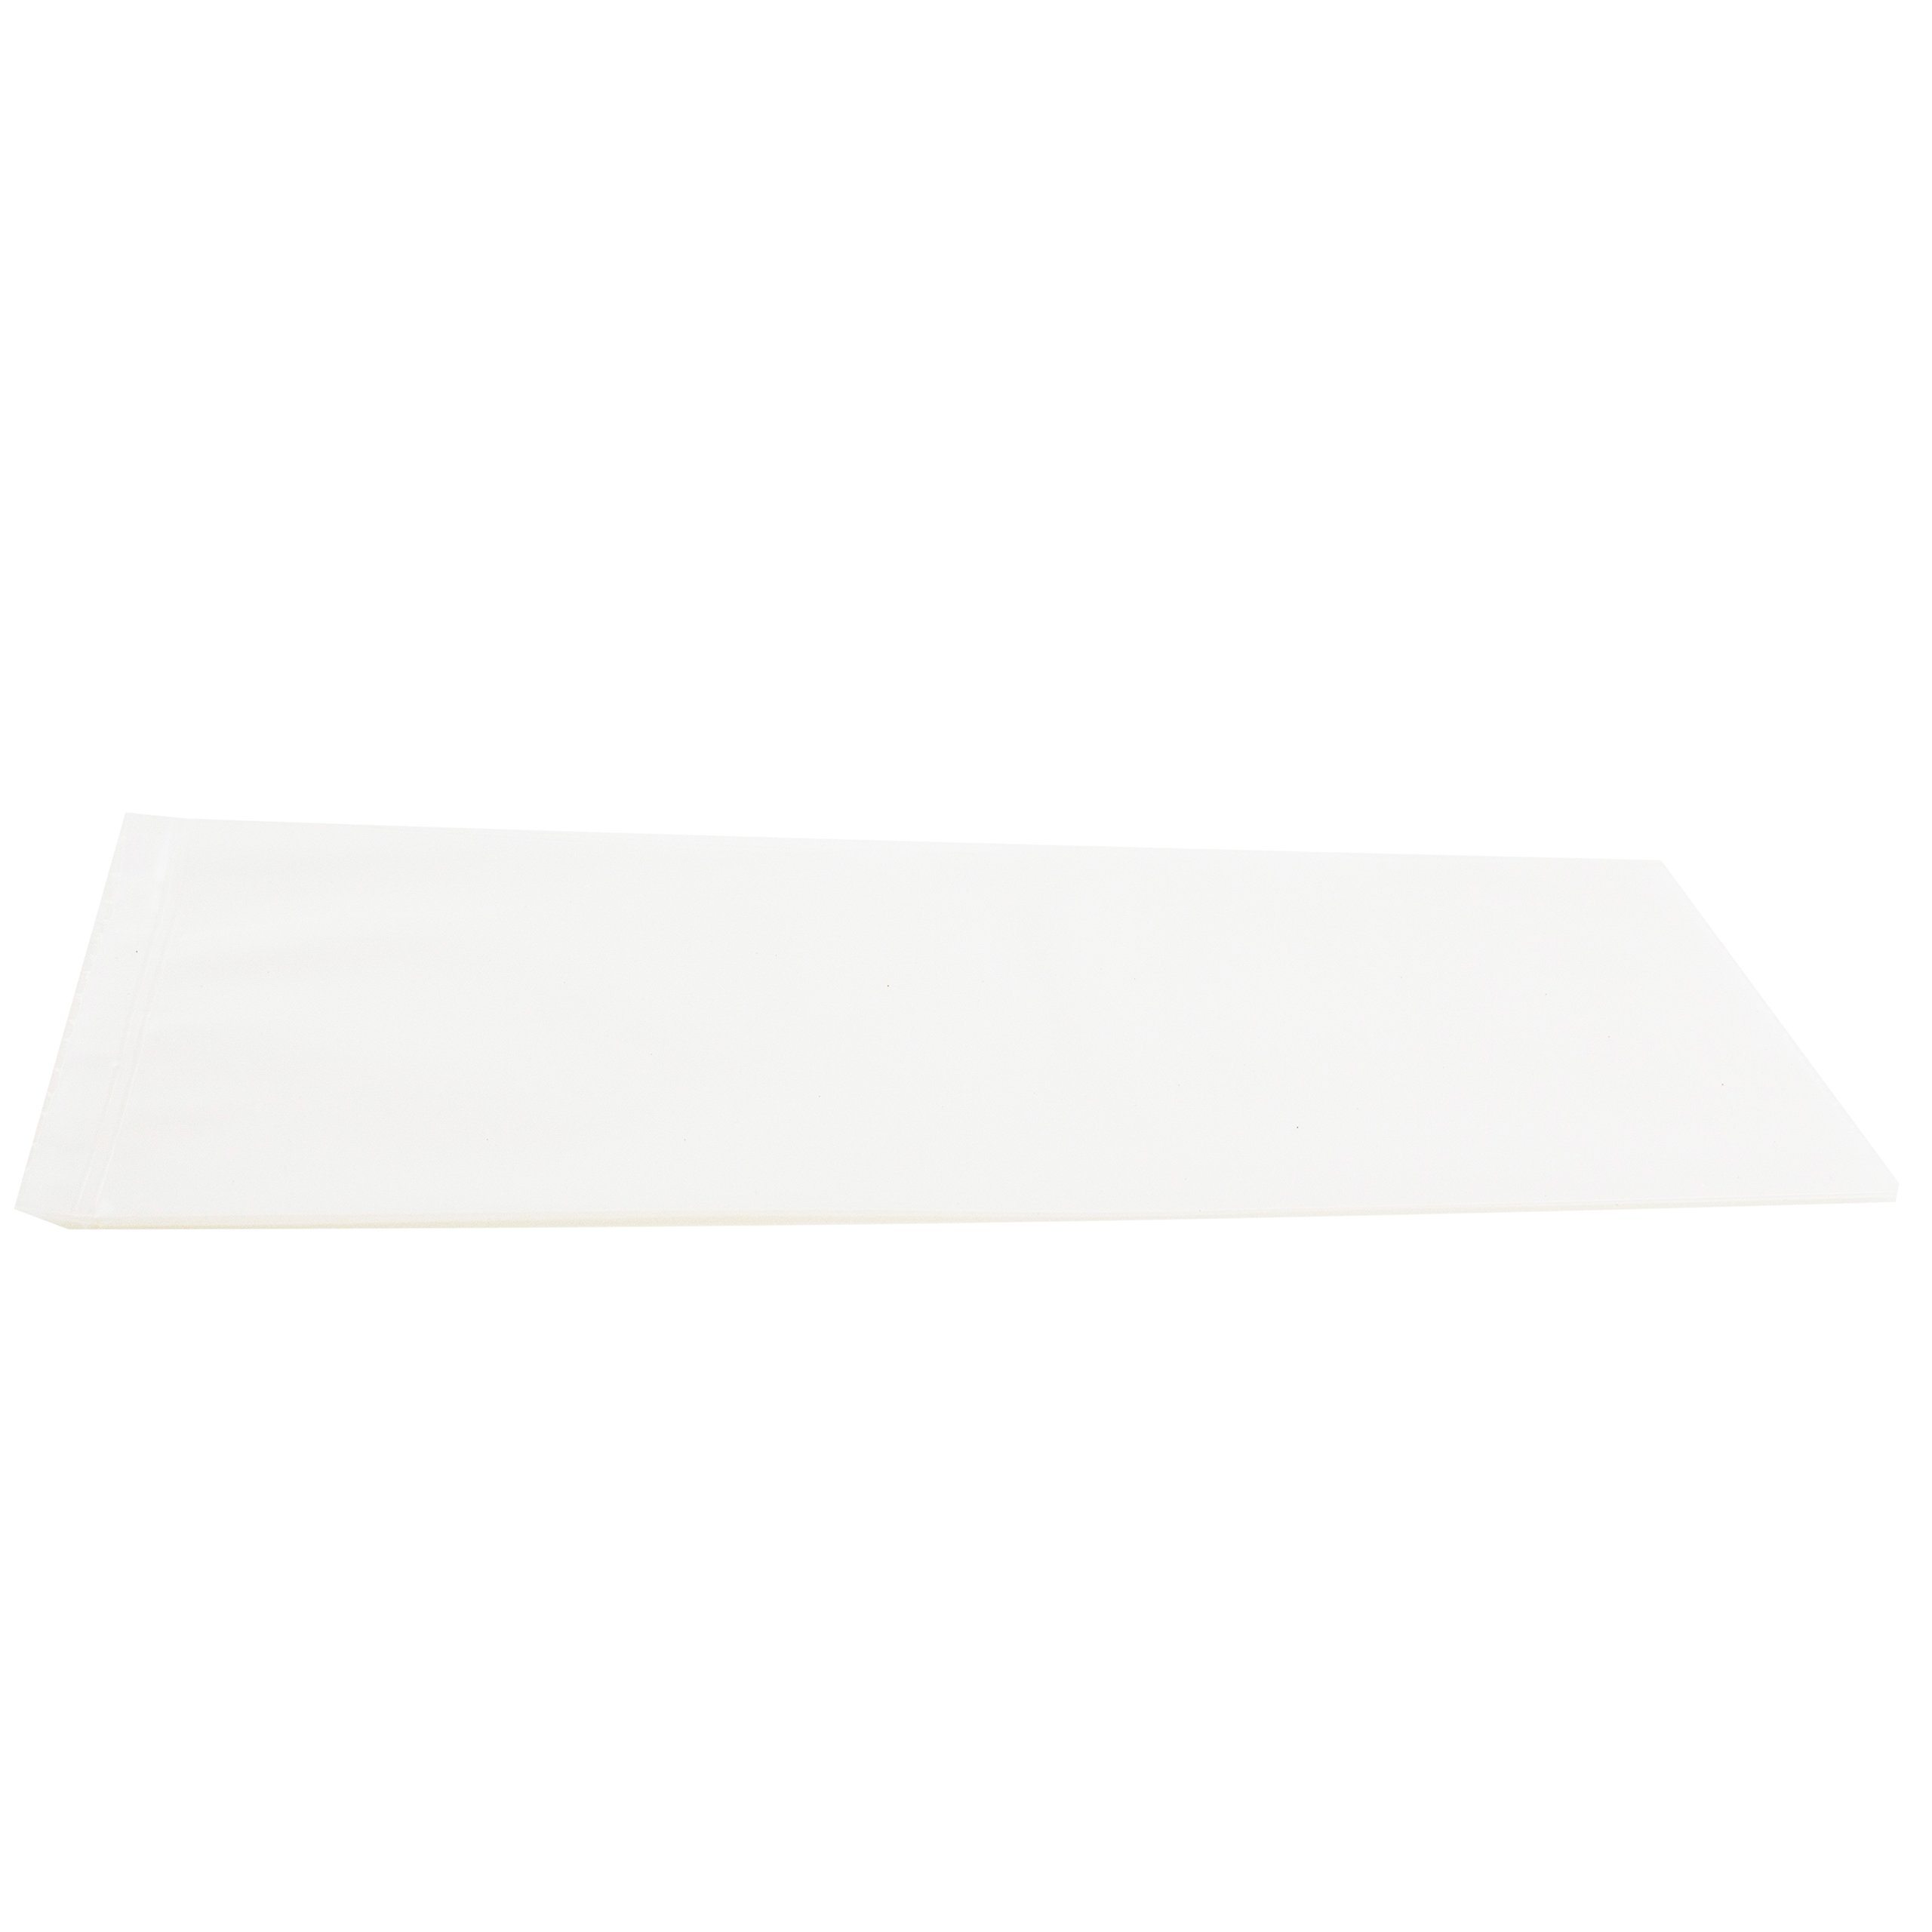 Polyethylene Bags, Unprinted, Clear, 4 mil Thick, 24 x 36 Inches, 100 per Case by RPI